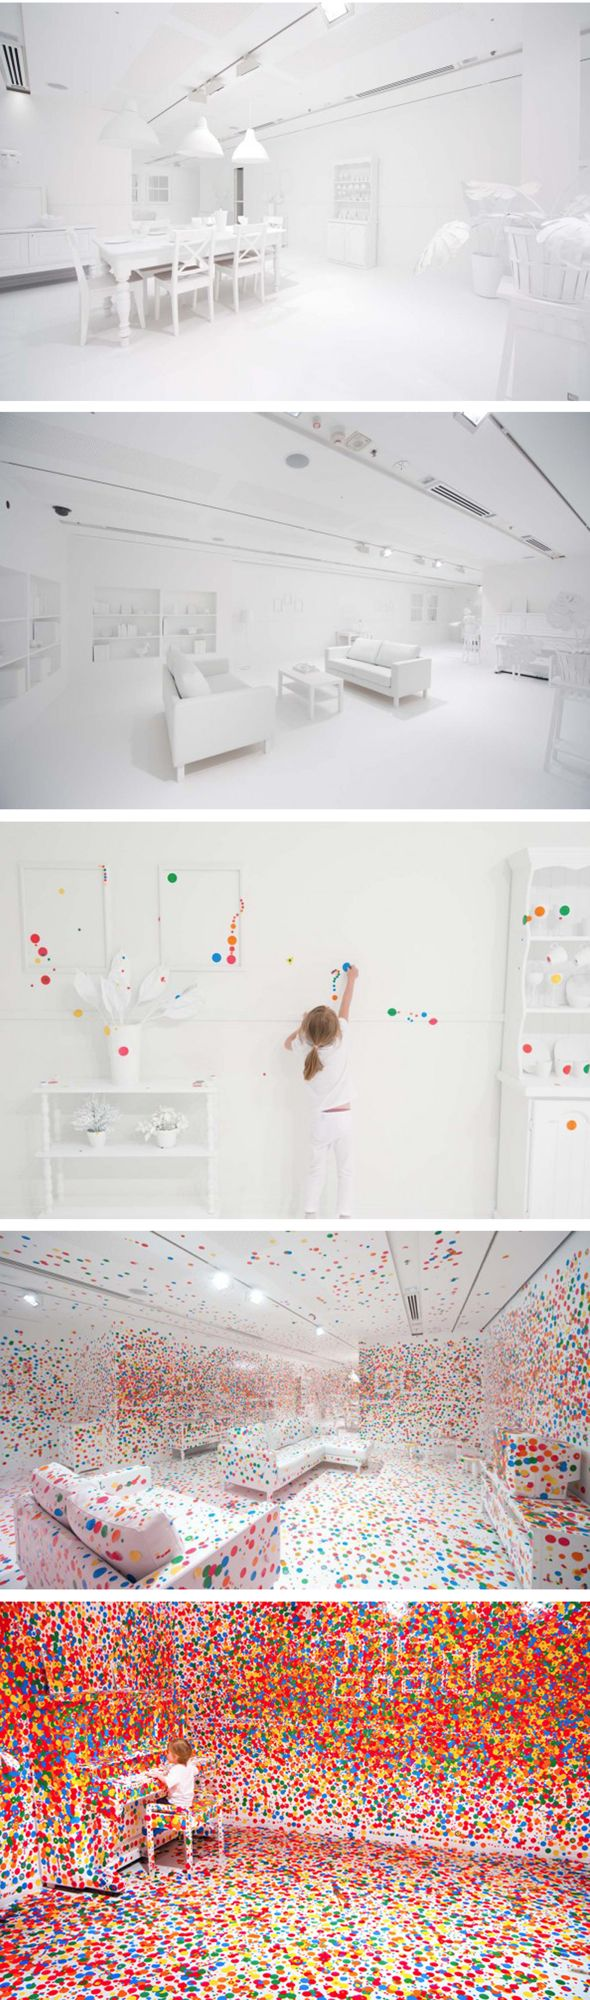 "I'm completely blown away by the genius of this installation by artist, Yayoi Kusama, for the Queensland gallery of Modern Art. Entitled the ""Obliteration Room"", this installation is part of Kasuma..."